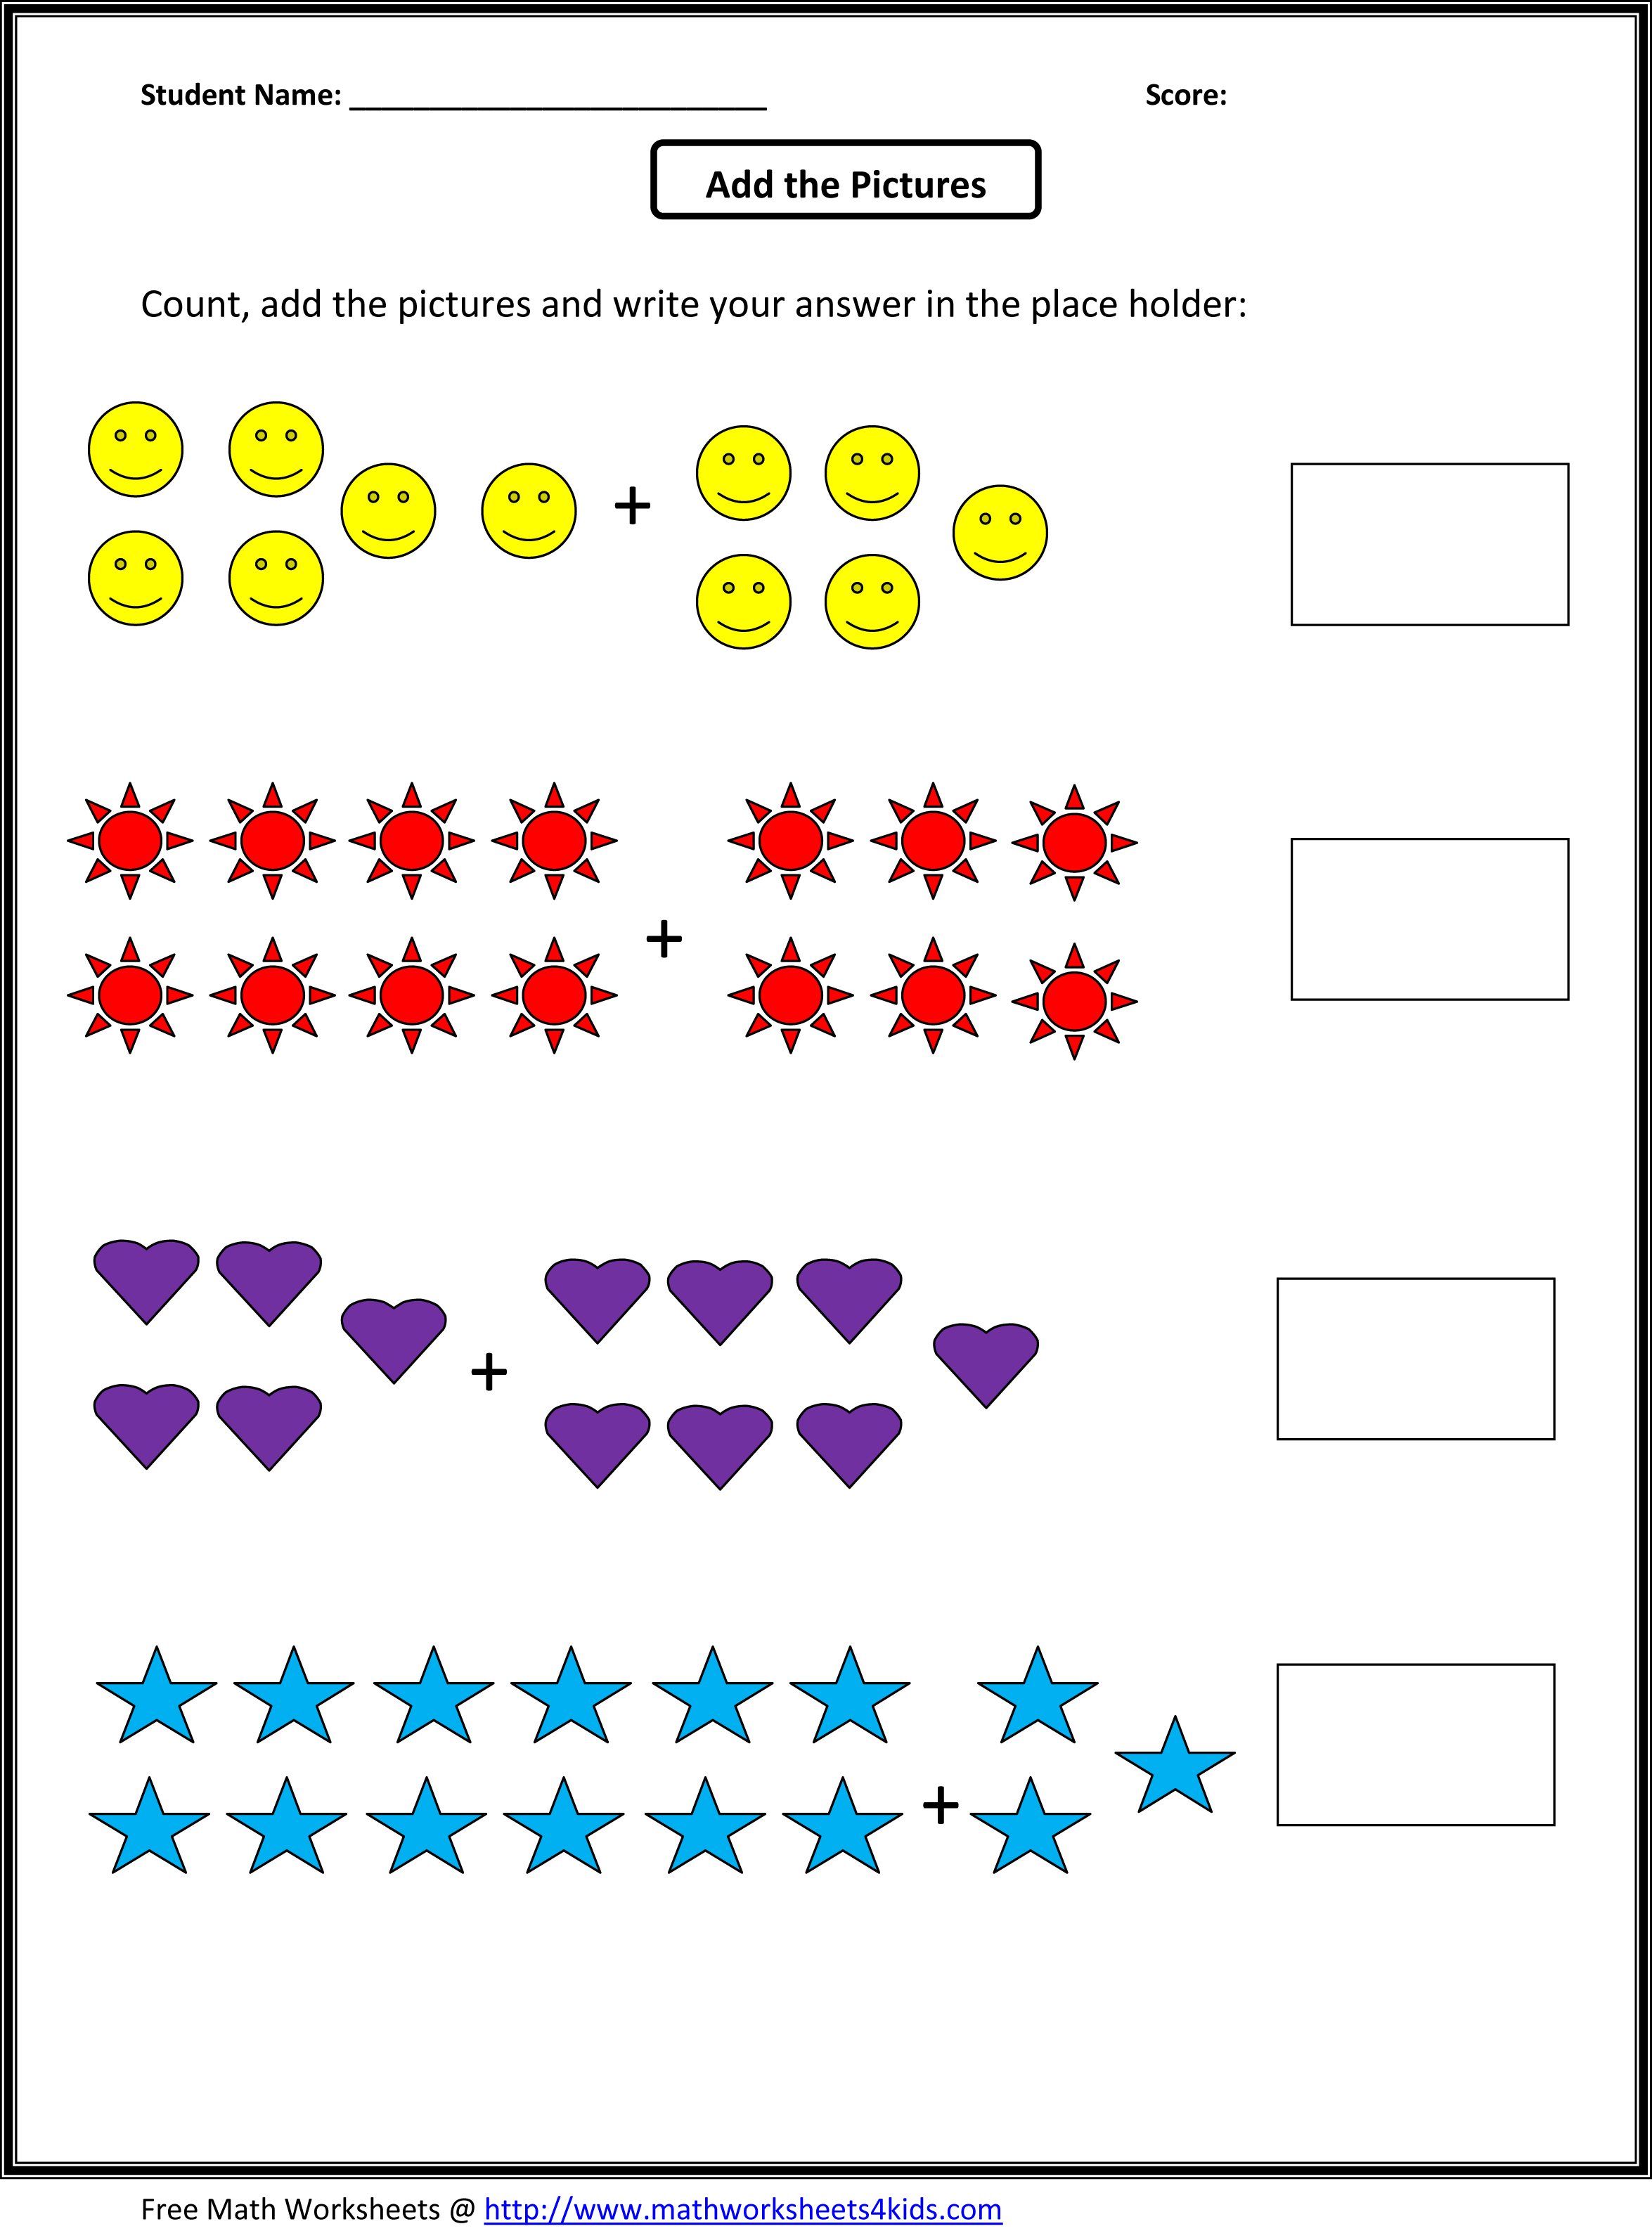 Weirdmailus  Fascinating Grade  Maths Worksheet  Reocurent With Hot Math Worksheets For St Grade Free  Reocurent With Endearing Linear Algebra Worksheets Also Measuring Centimeters Worksheet In Addition F Worksheet And Monthly Bill Payment Worksheet As Well As Chemistry Unit  Worksheet  Additionally Distributive Properties Worksheets From Reocurentcom With Weirdmailus  Hot Grade  Maths Worksheet  Reocurent With Endearing Math Worksheets For St Grade Free  Reocurent And Fascinating Linear Algebra Worksheets Also Measuring Centimeters Worksheet In Addition F Worksheet From Reocurentcom